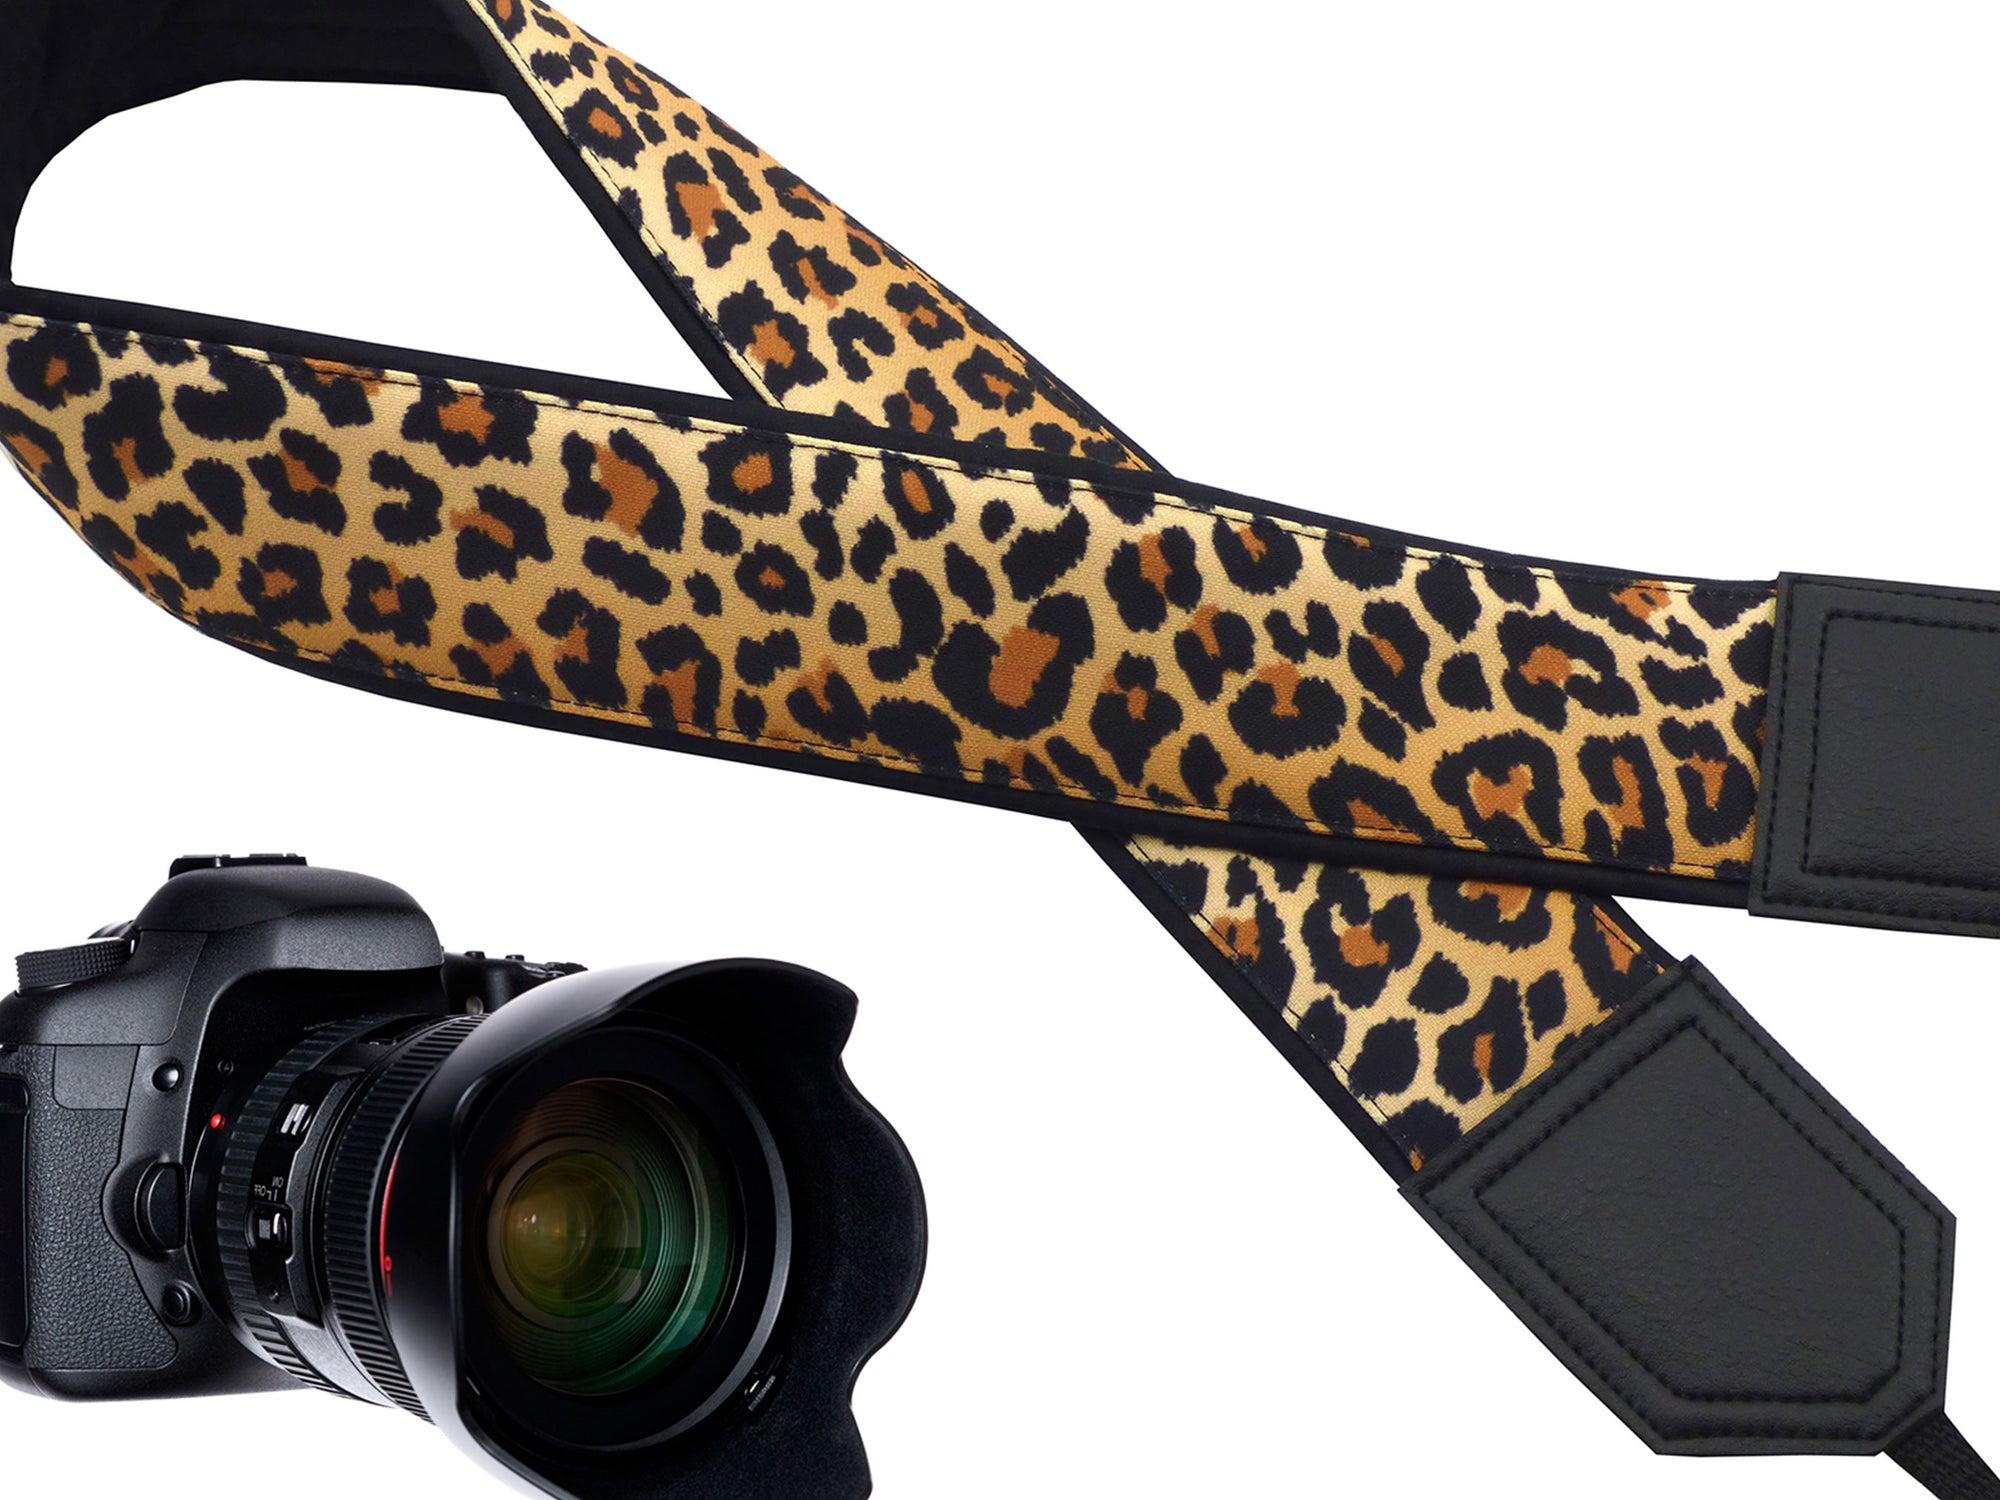 Personalized camera strap. Comfy and durable strap. Leopard Jaguar print camera strap for wild animal lovers. Best gift for photographers.